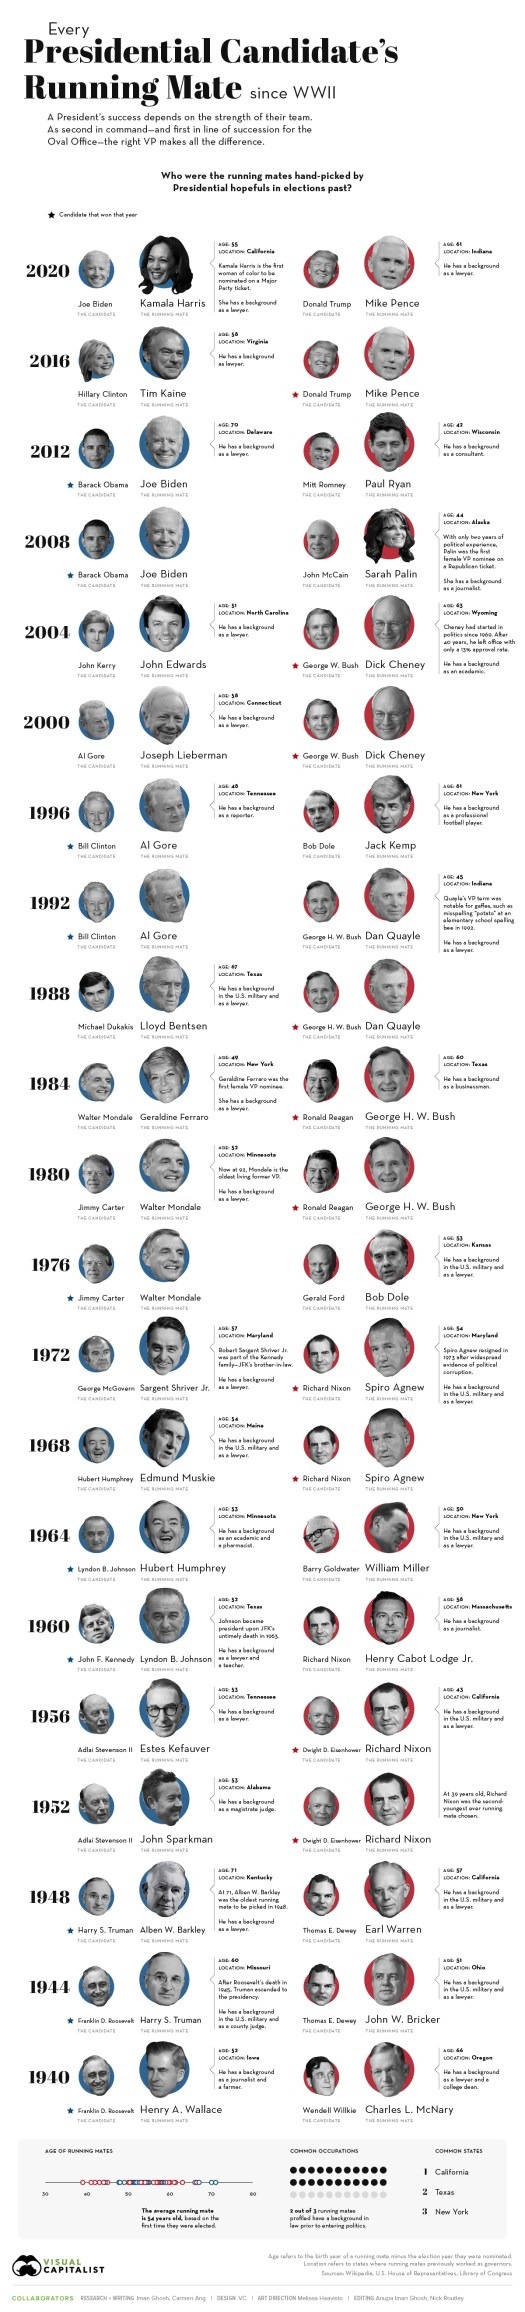 Every Presidential Candidate's Running Mate Since WWII